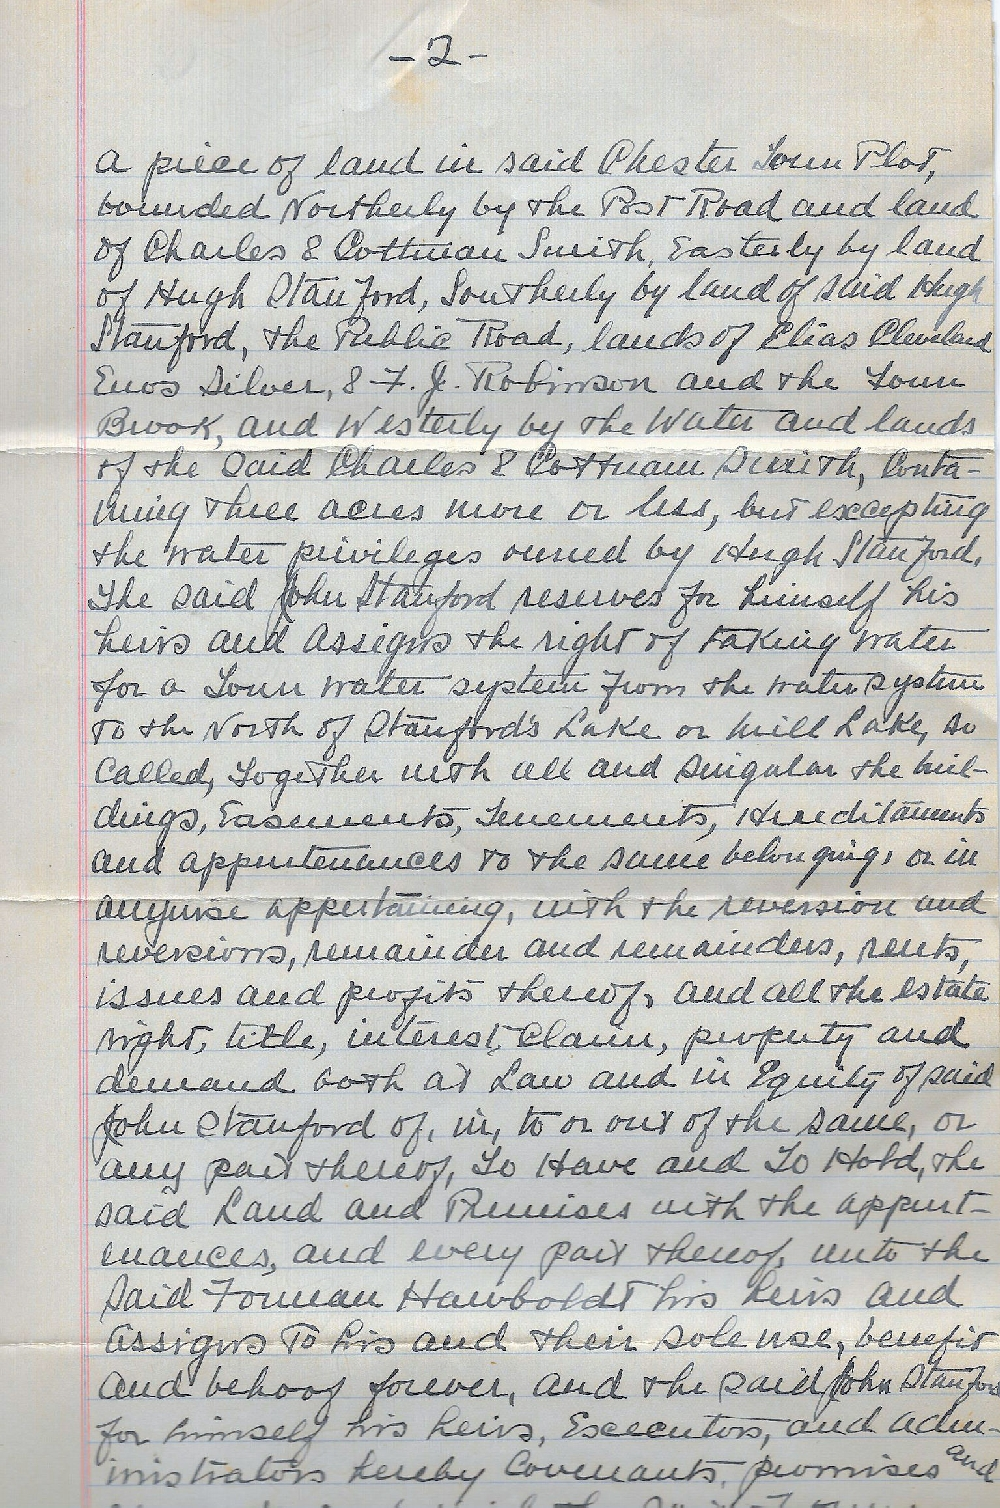 A hand written second page scanned from the deed conveying the land for the foundry and house lot to Forman Hawboldt his heirs and assigns.